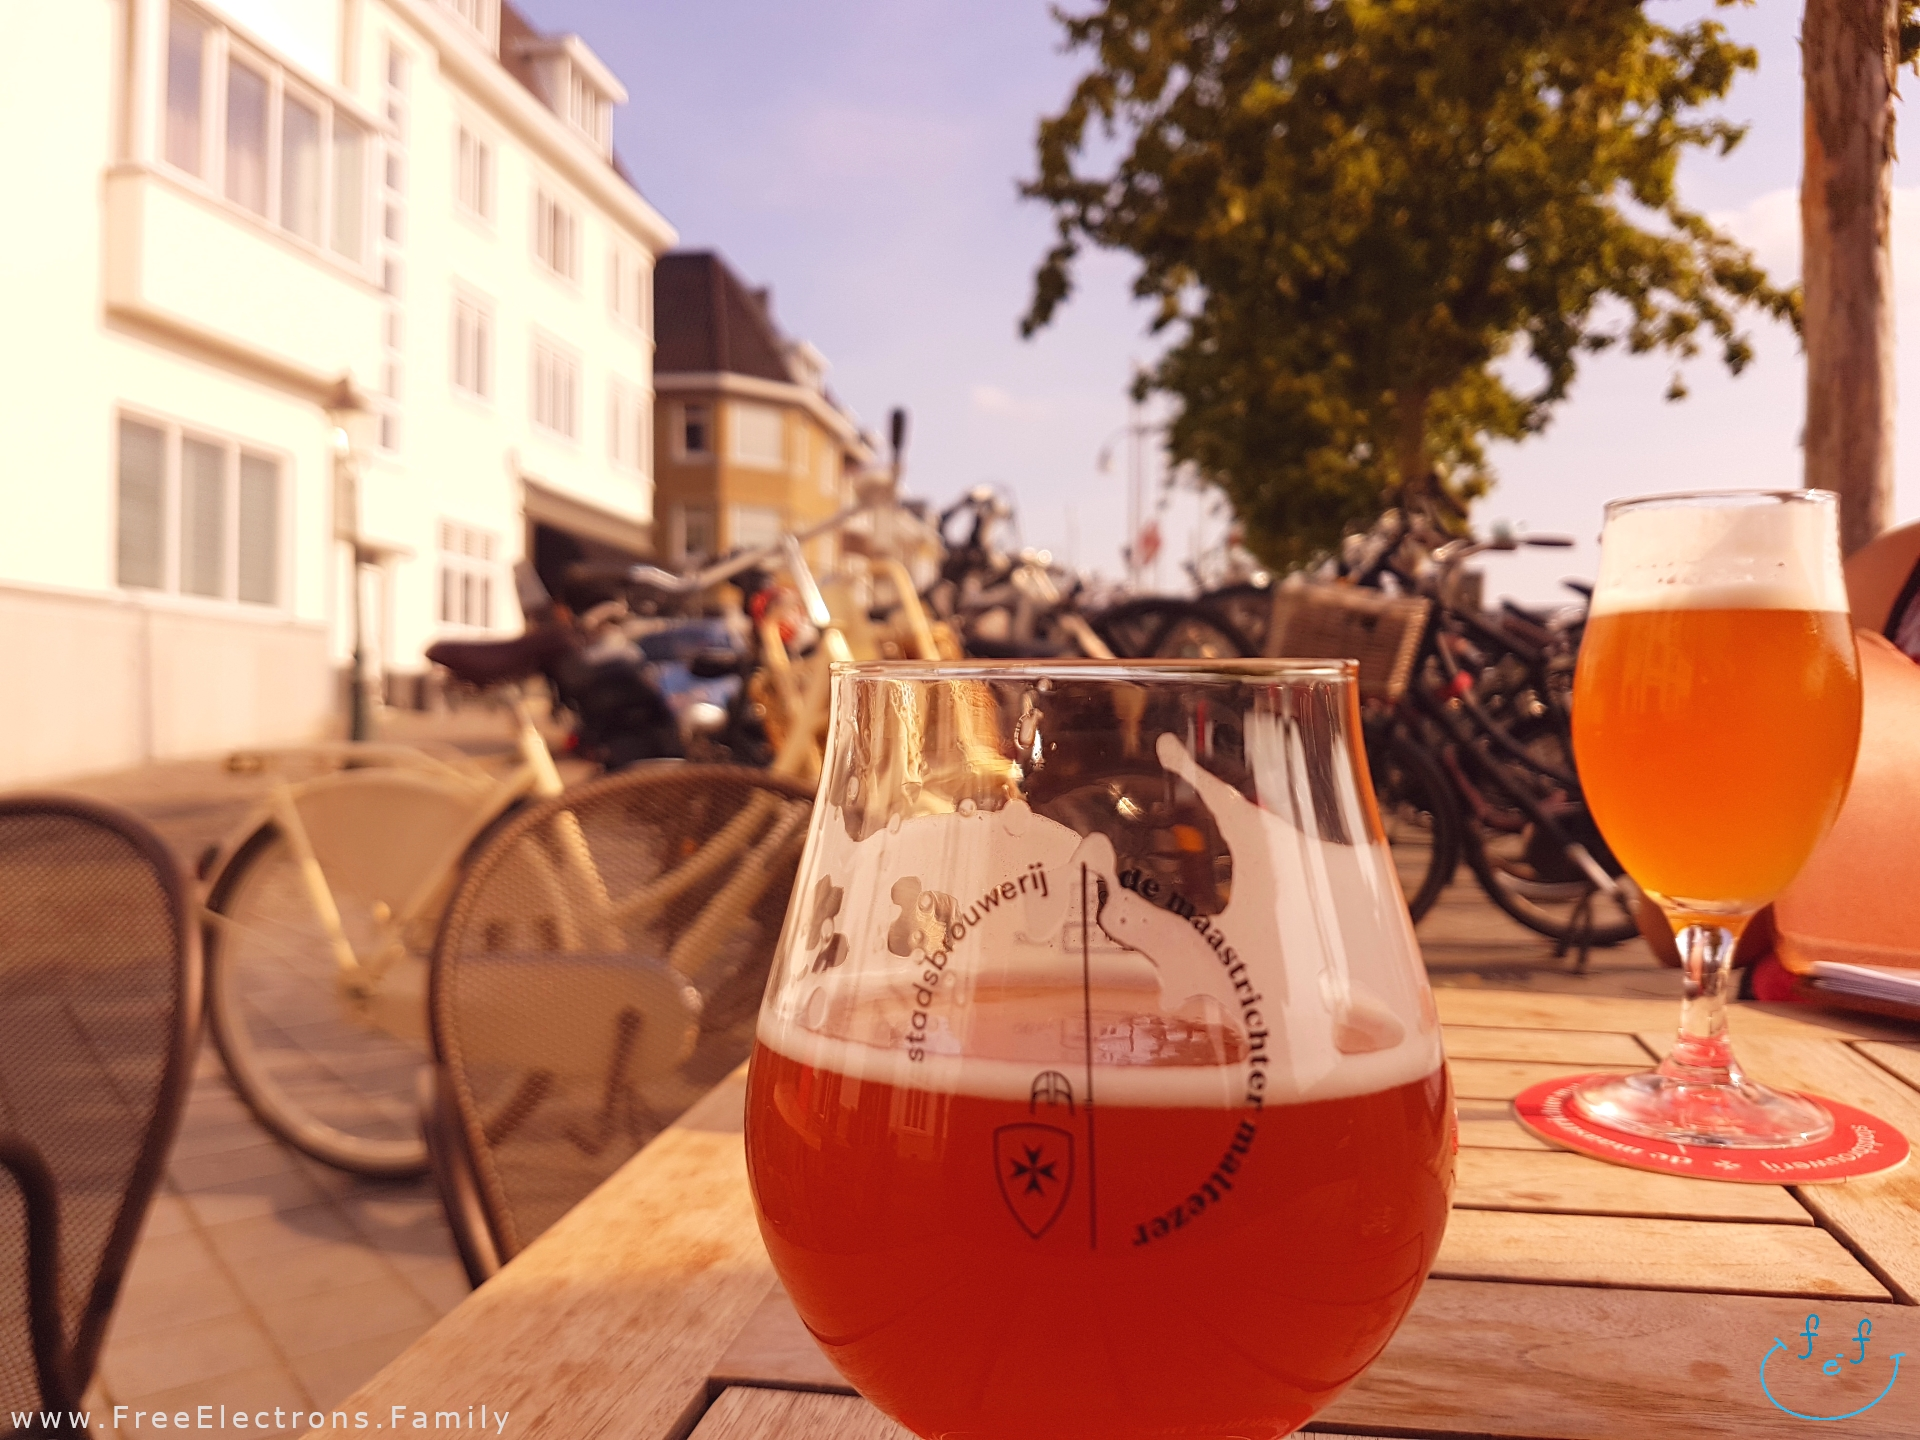 2 different beers in glasses--one blonde, the other, golden... blurred bicycles in the background.   Stadsbrouwerij: de Maastrichter Maltezer outdoor restaurant pub with its own brewery.  #FreeElectrons.Family - camping road trip Europe Maastricht